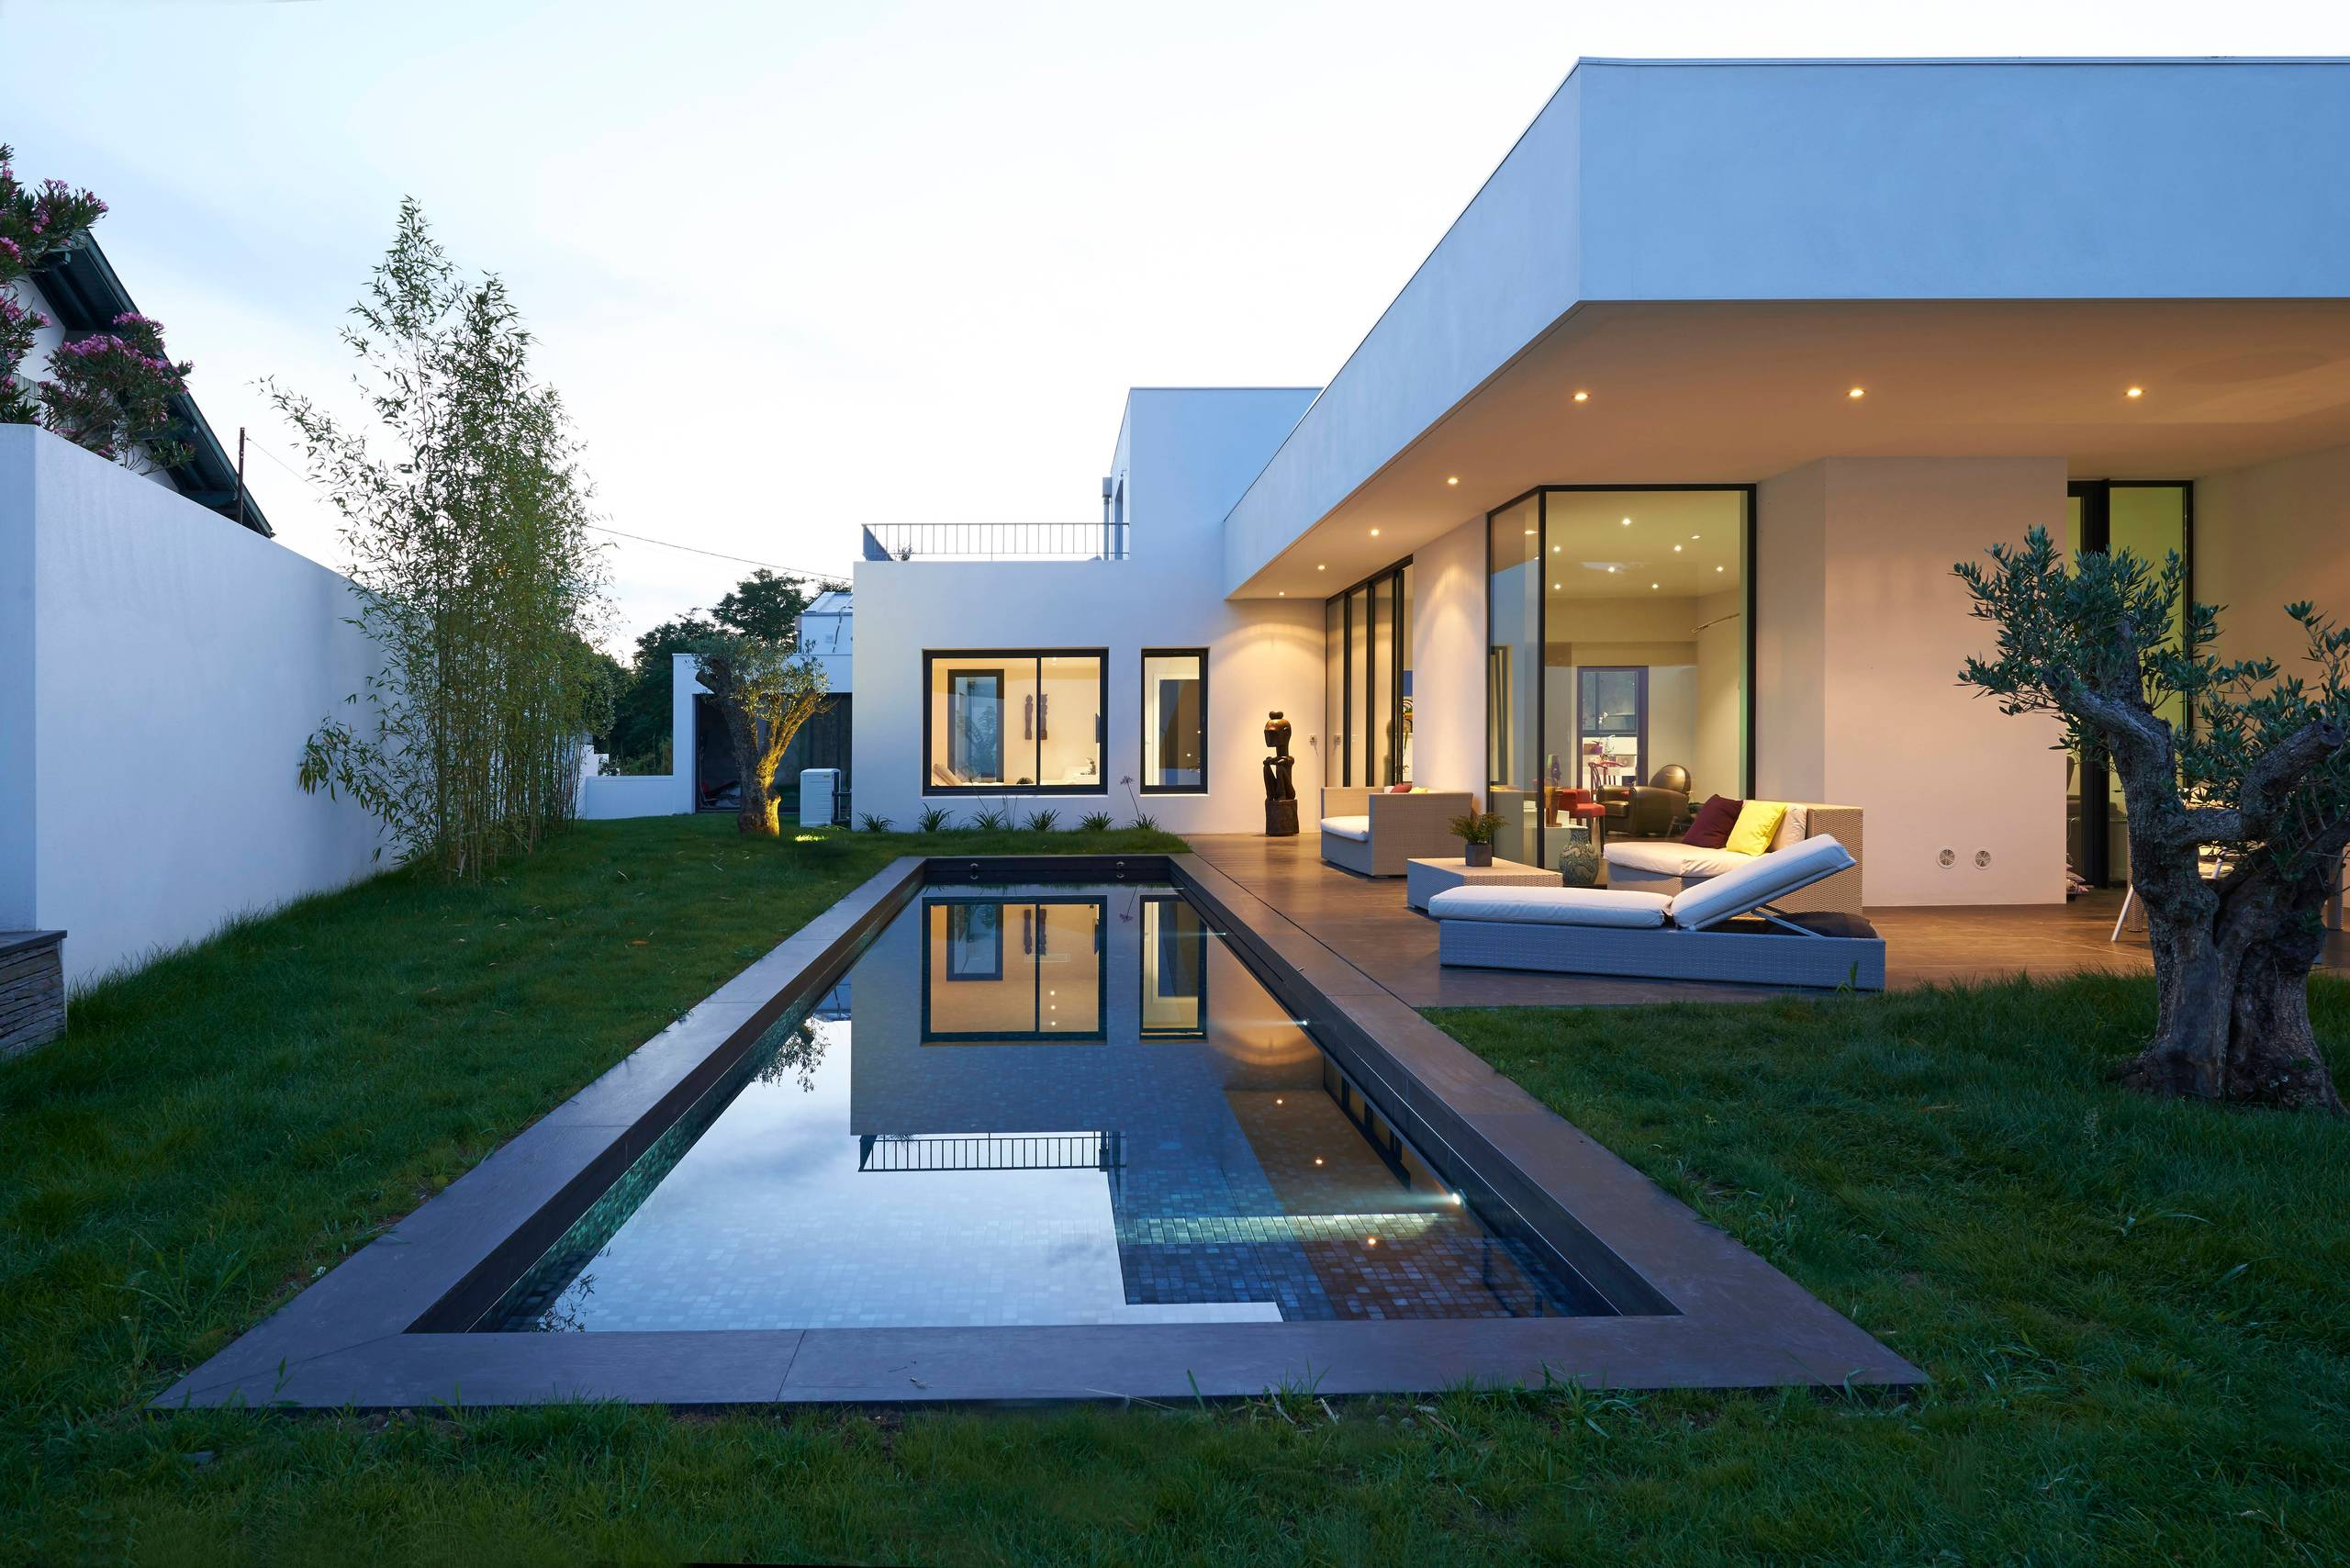 18 Dazzling Modern Swimming Pool Designs - The Ultimate ... on Contemporary Backyard id=82657